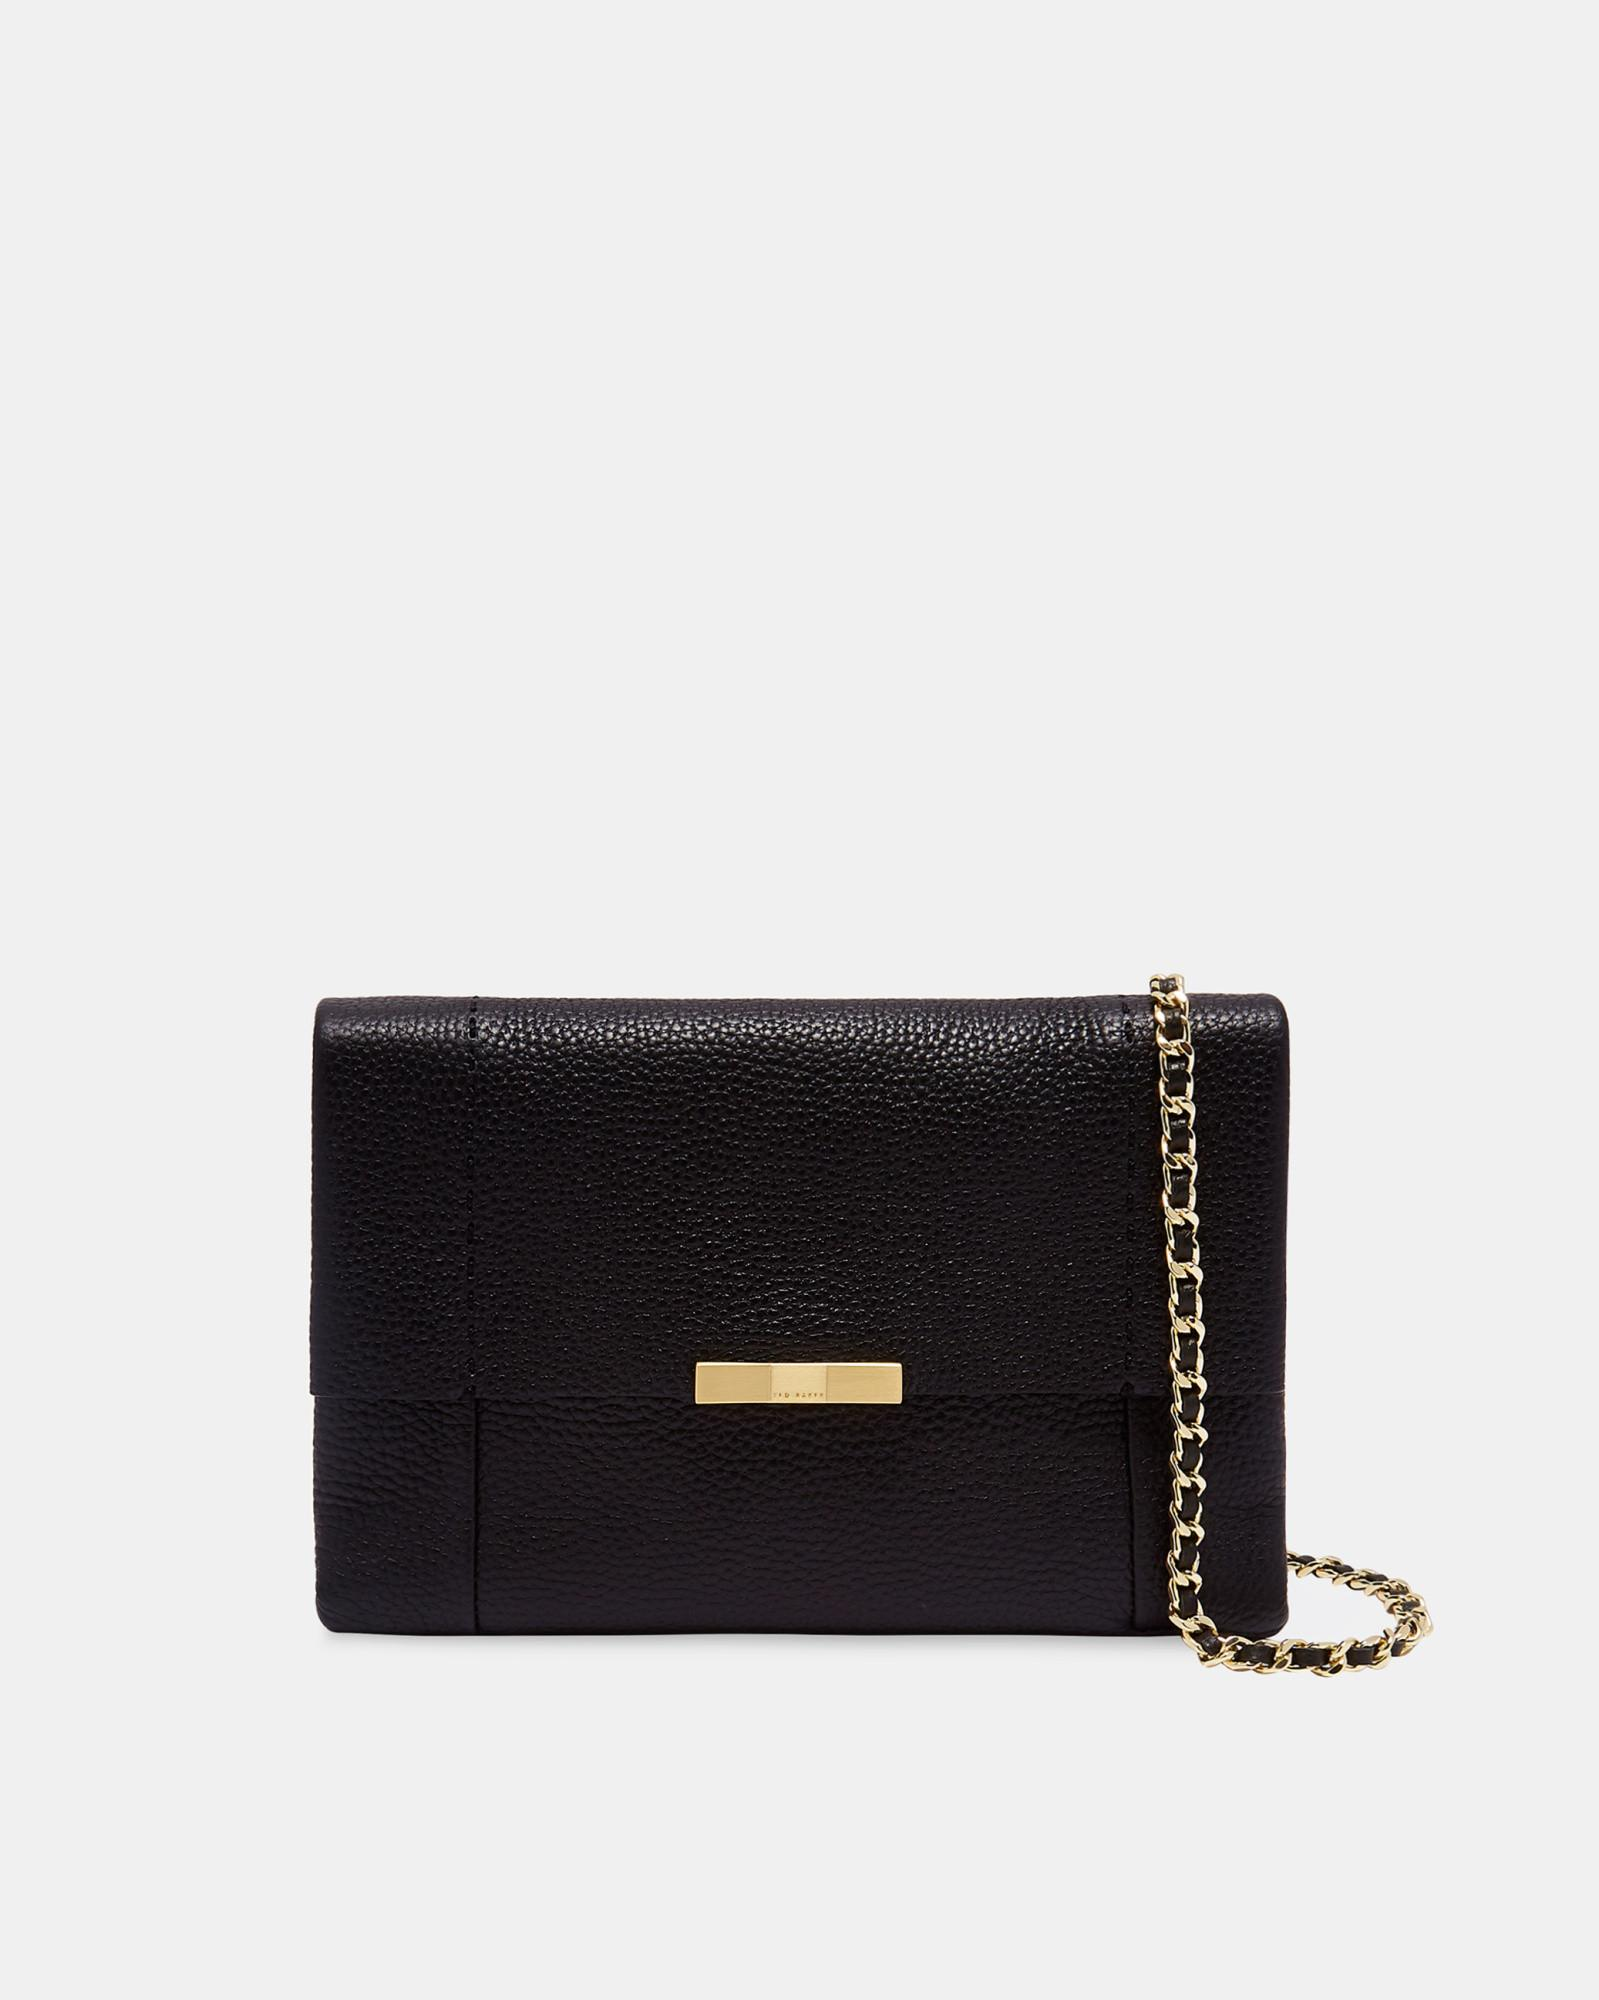 a872d58d2 Ted Baker Leather Cross Body Bag in Black - Lyst